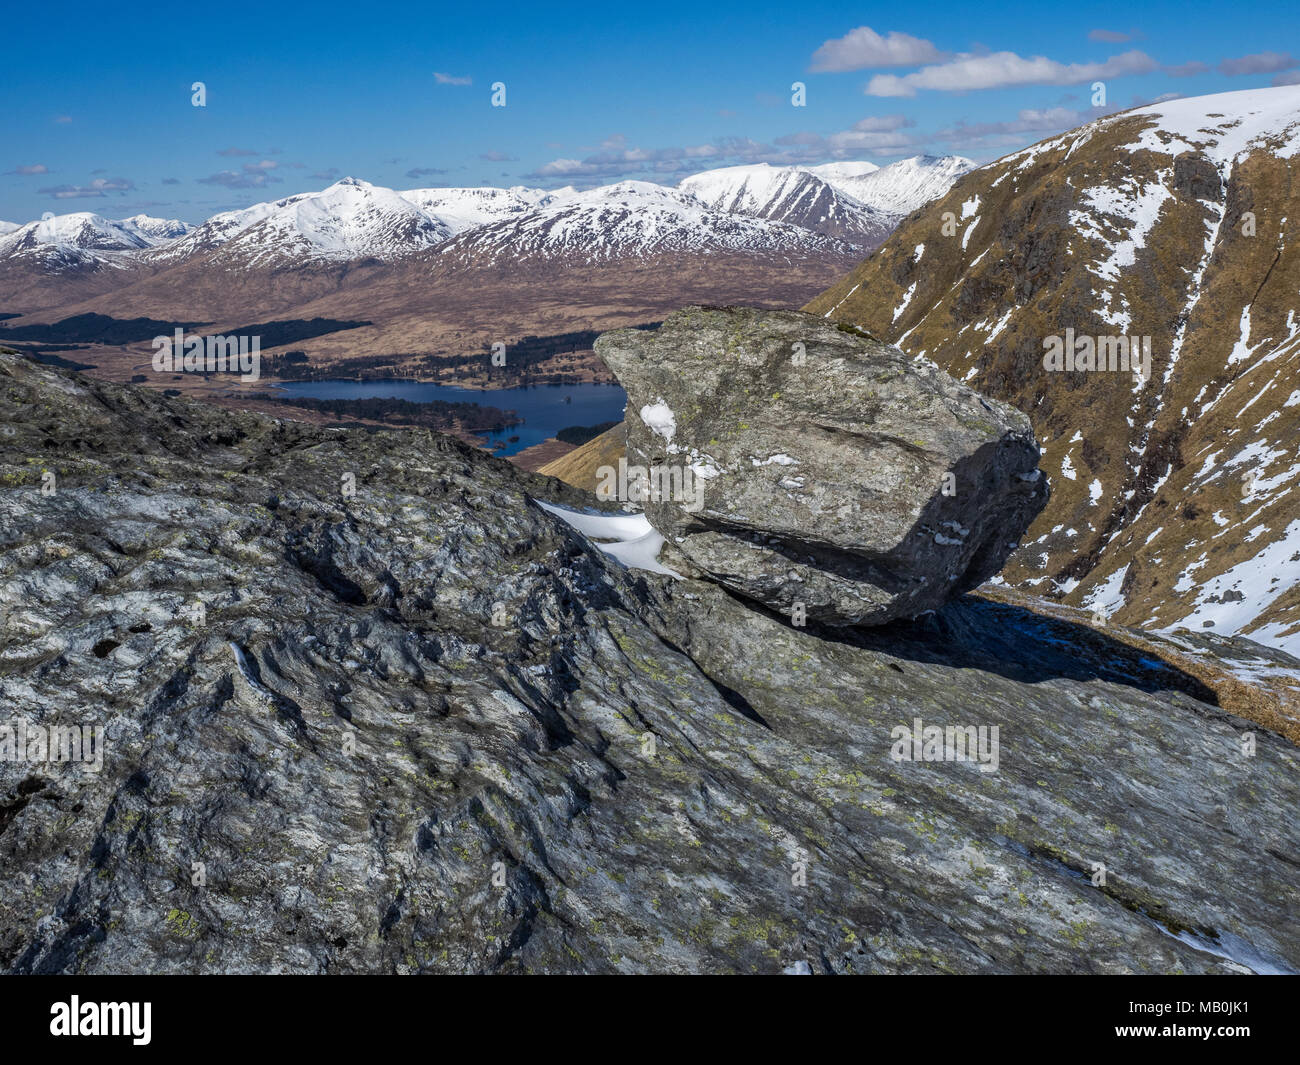 A large rock sitting on the ridge leading to the summit of Beinn Dorain in the Scottish Highlands with the snow capped Blackmount hills in the backgro - Stock Image